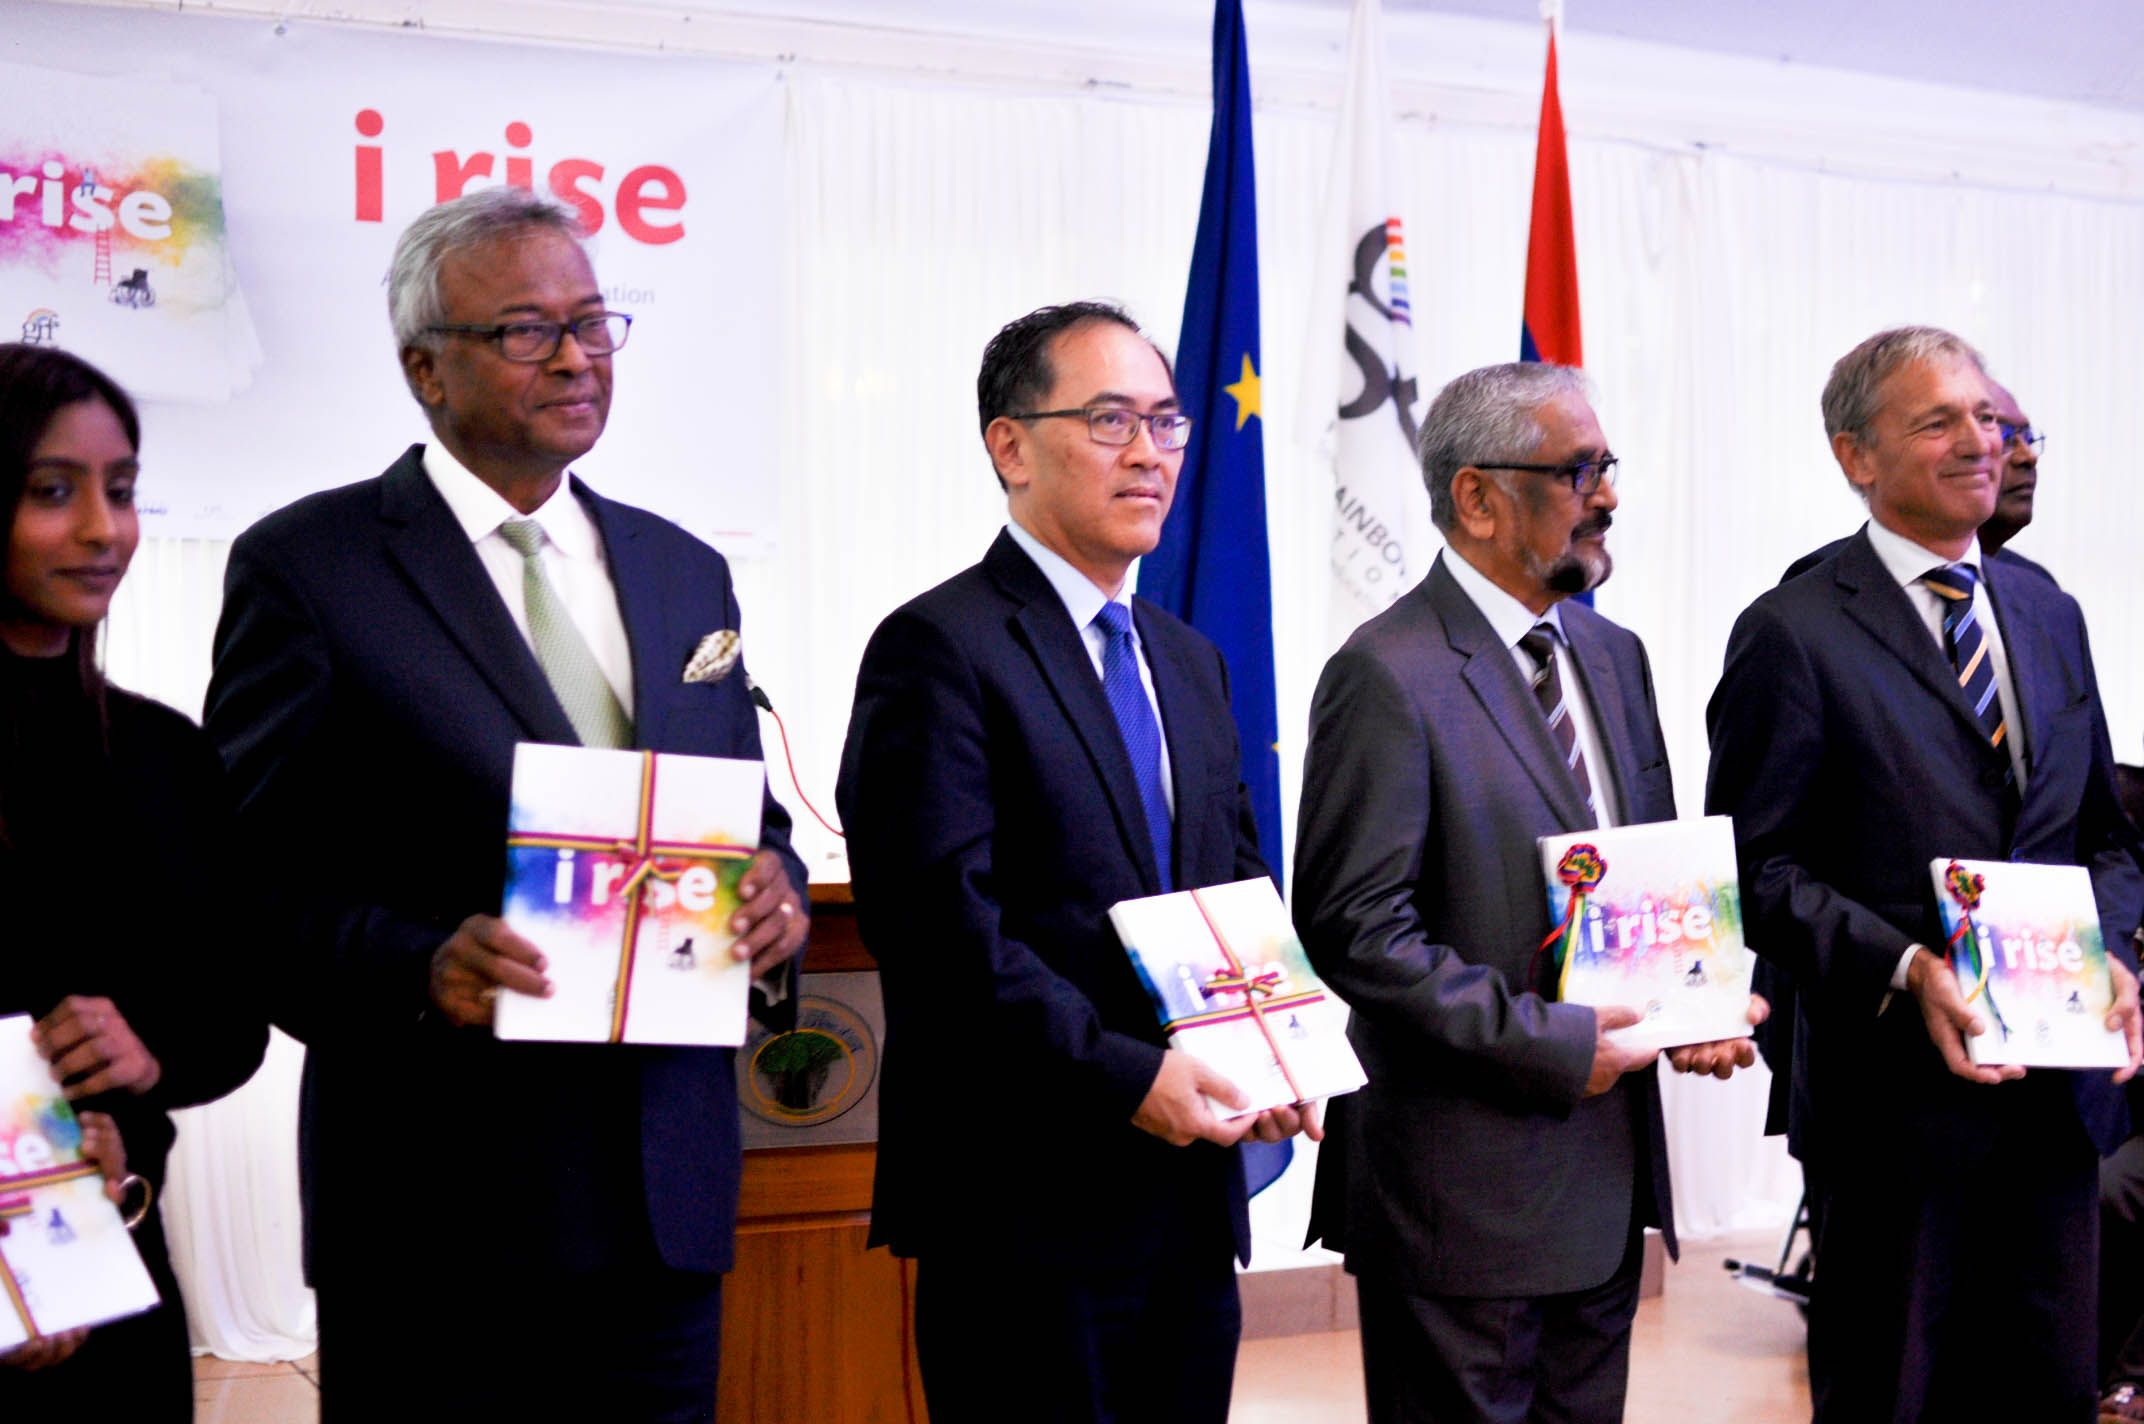 """Launch of the book """"i rise"""""""